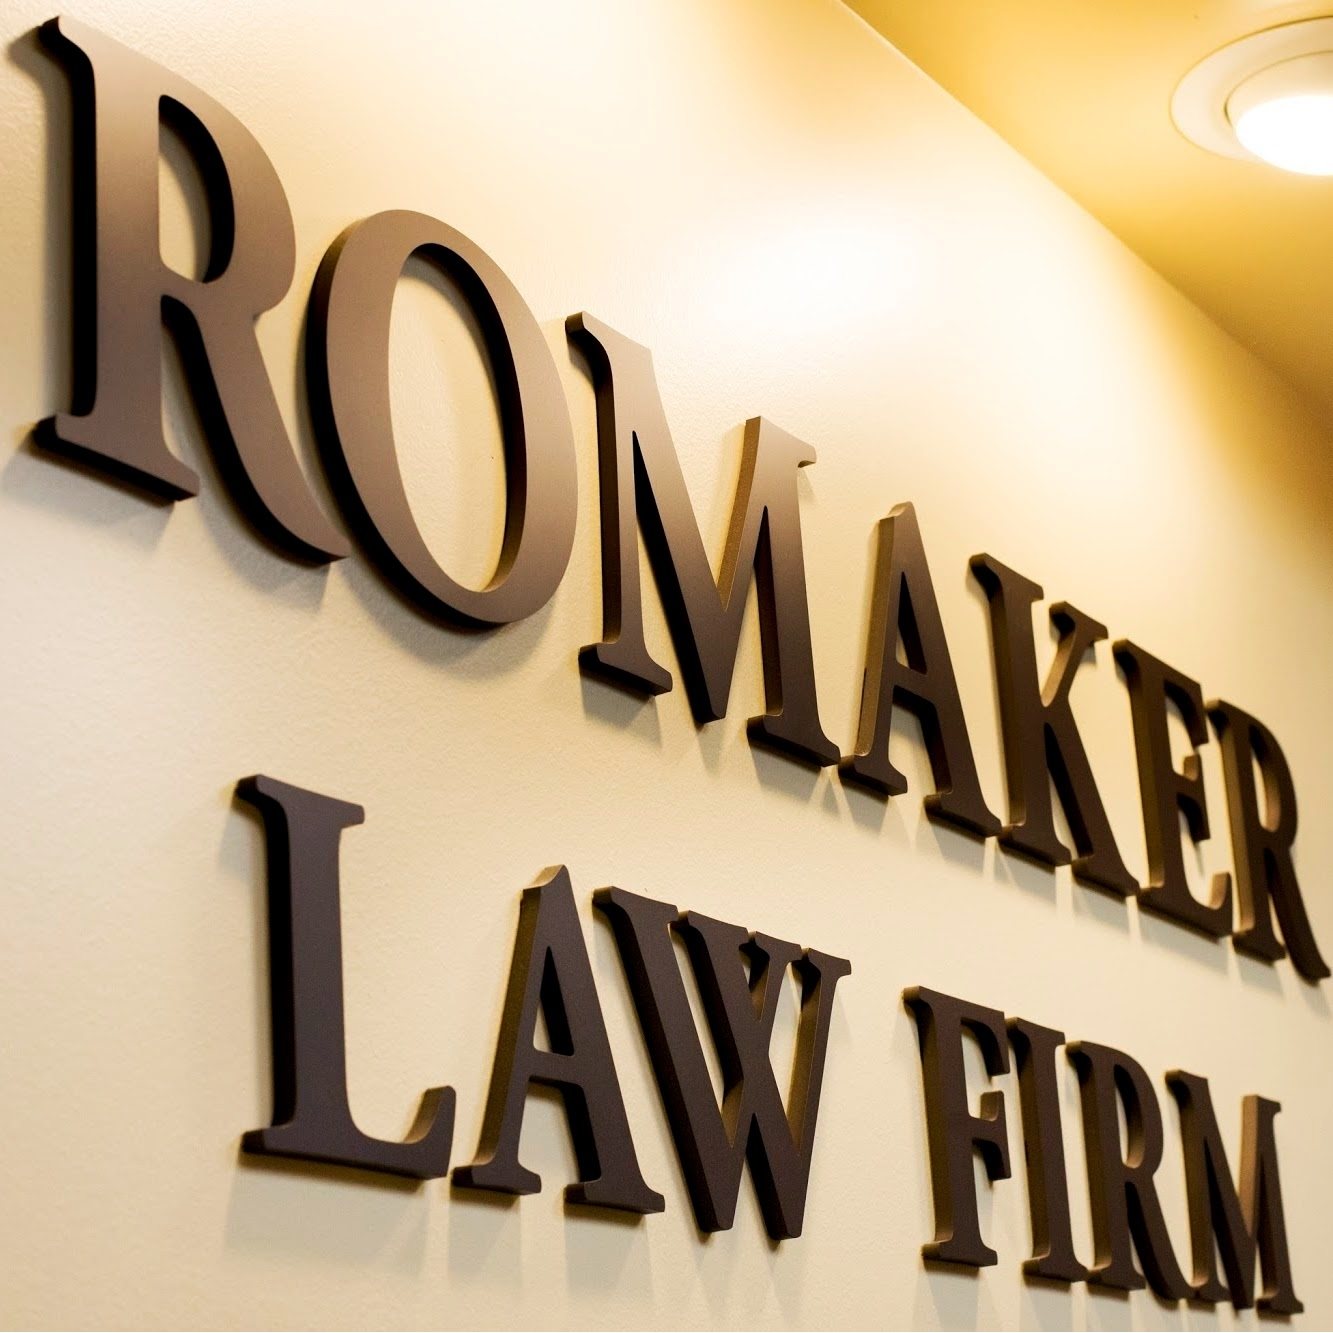 The Romaker Law Firm